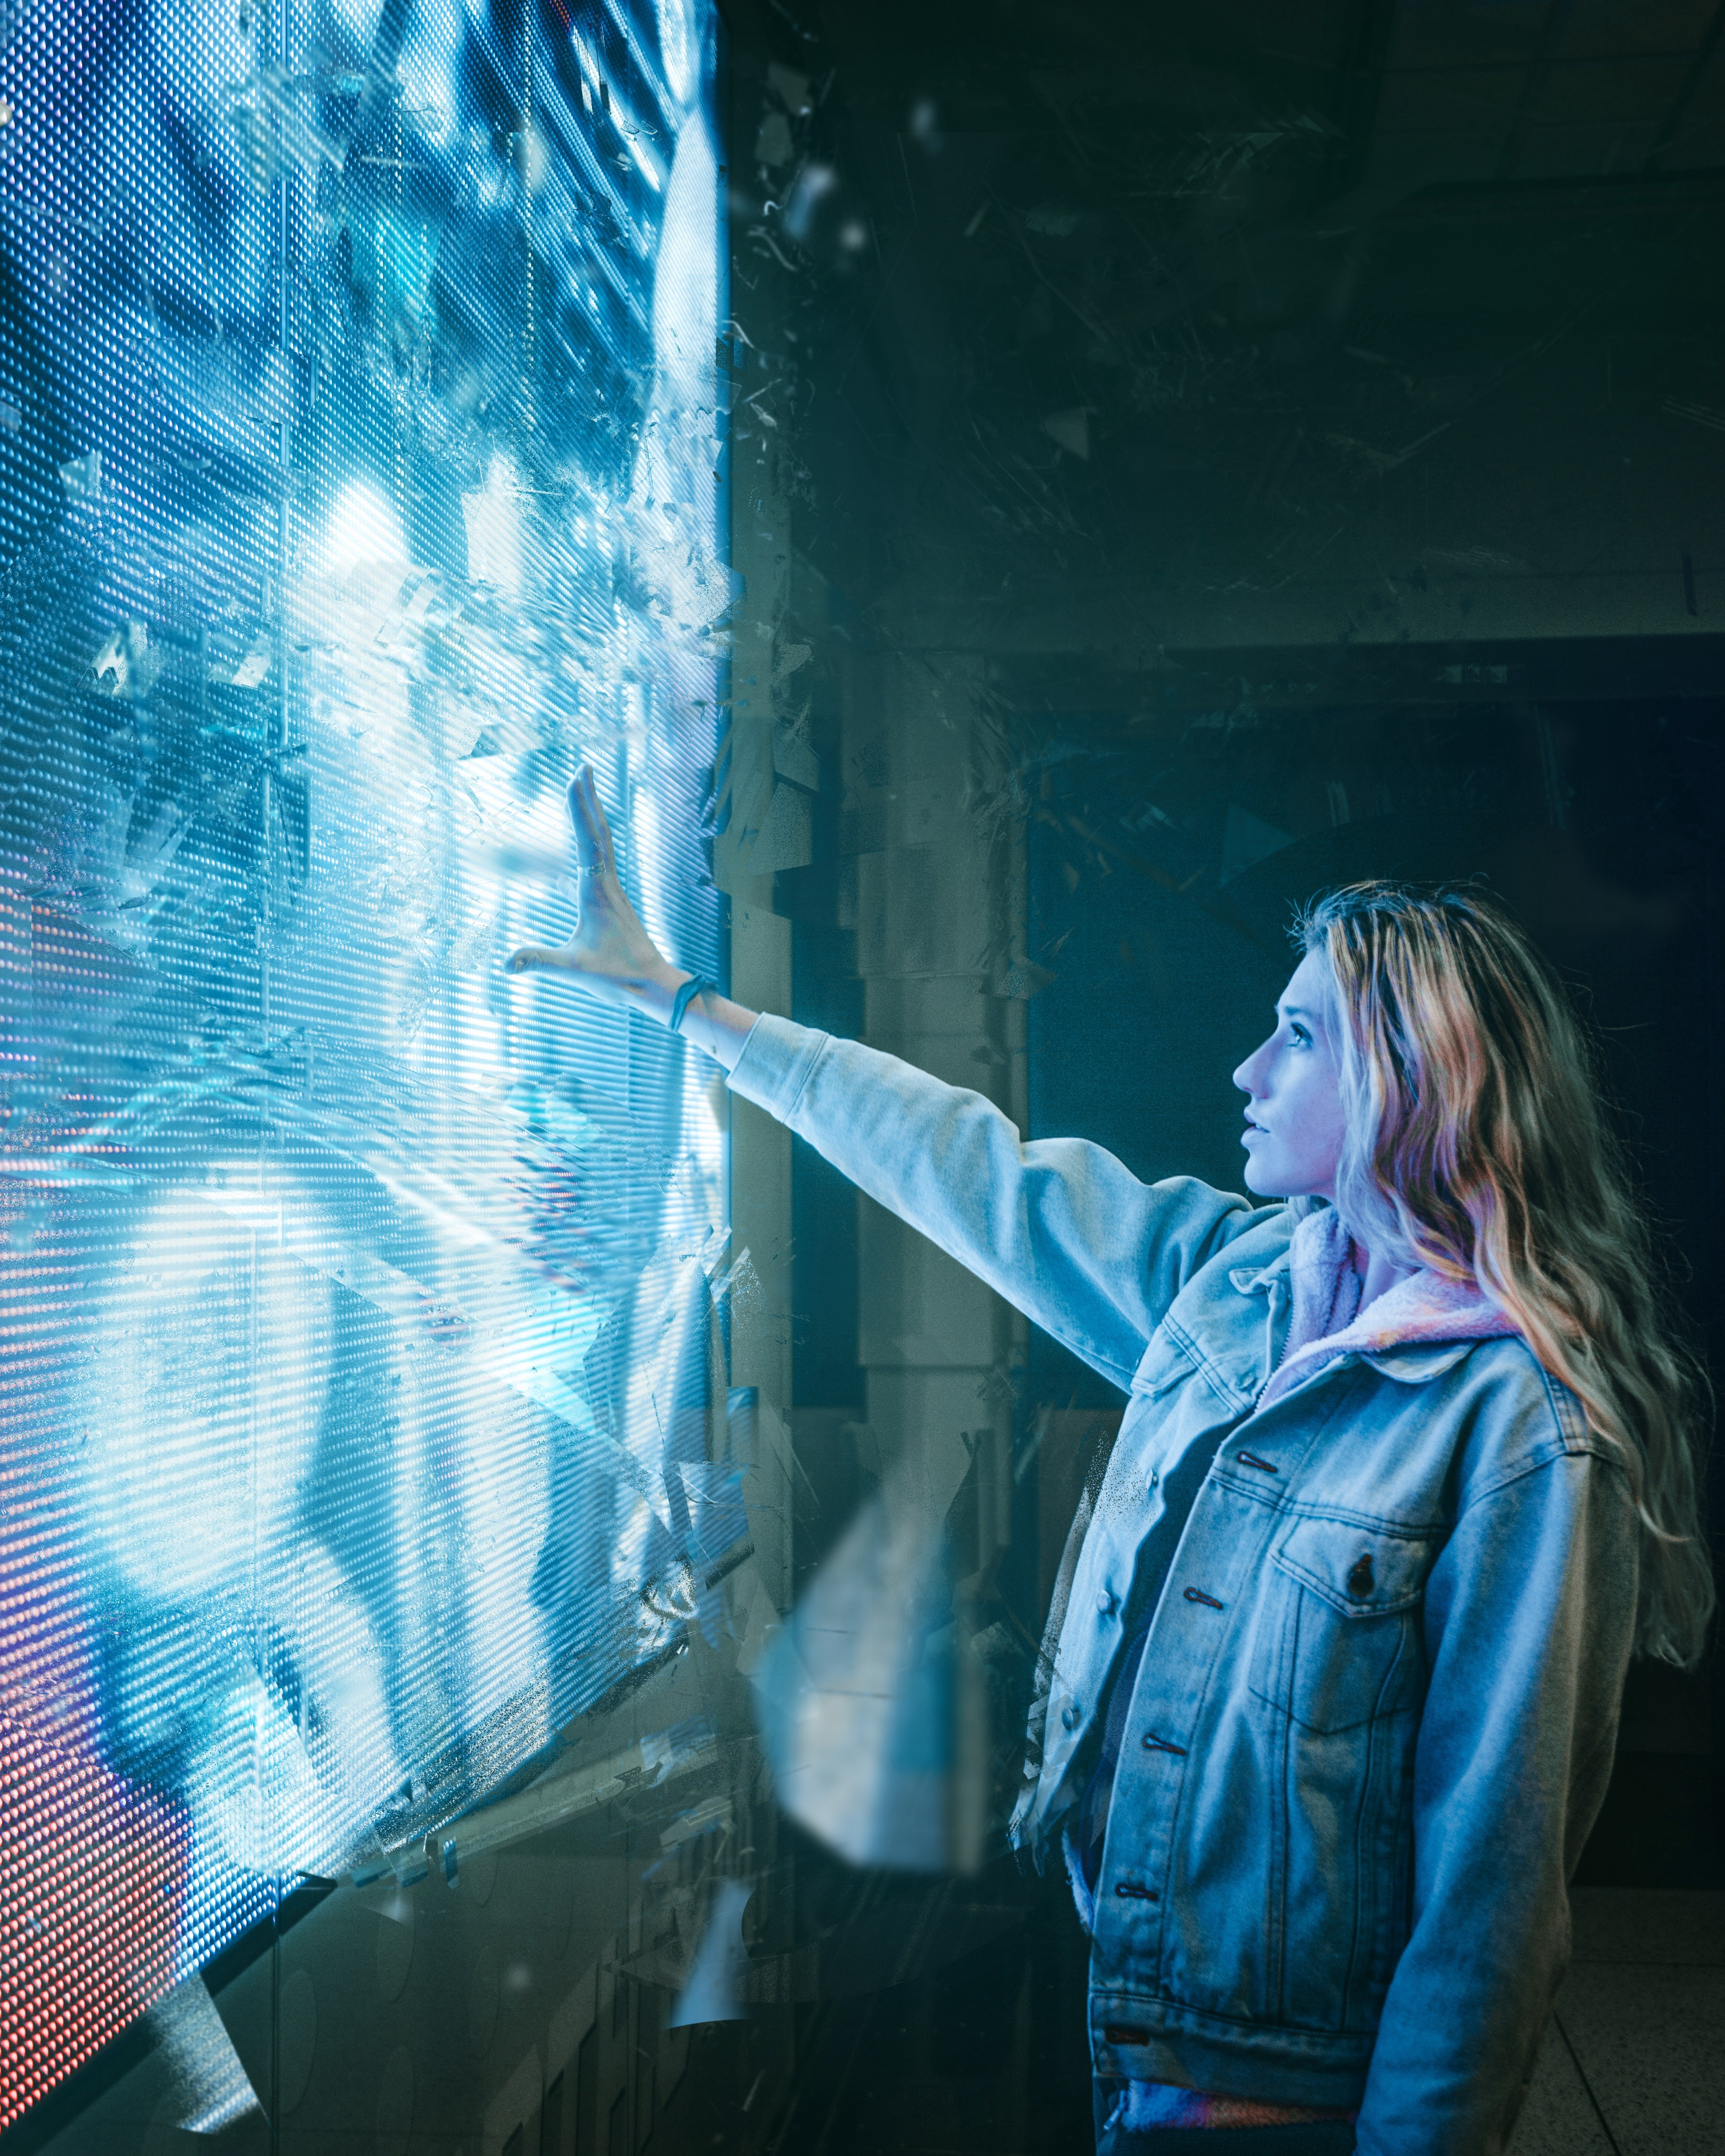 A girl faces a digital screen and reaches her hand out to it.